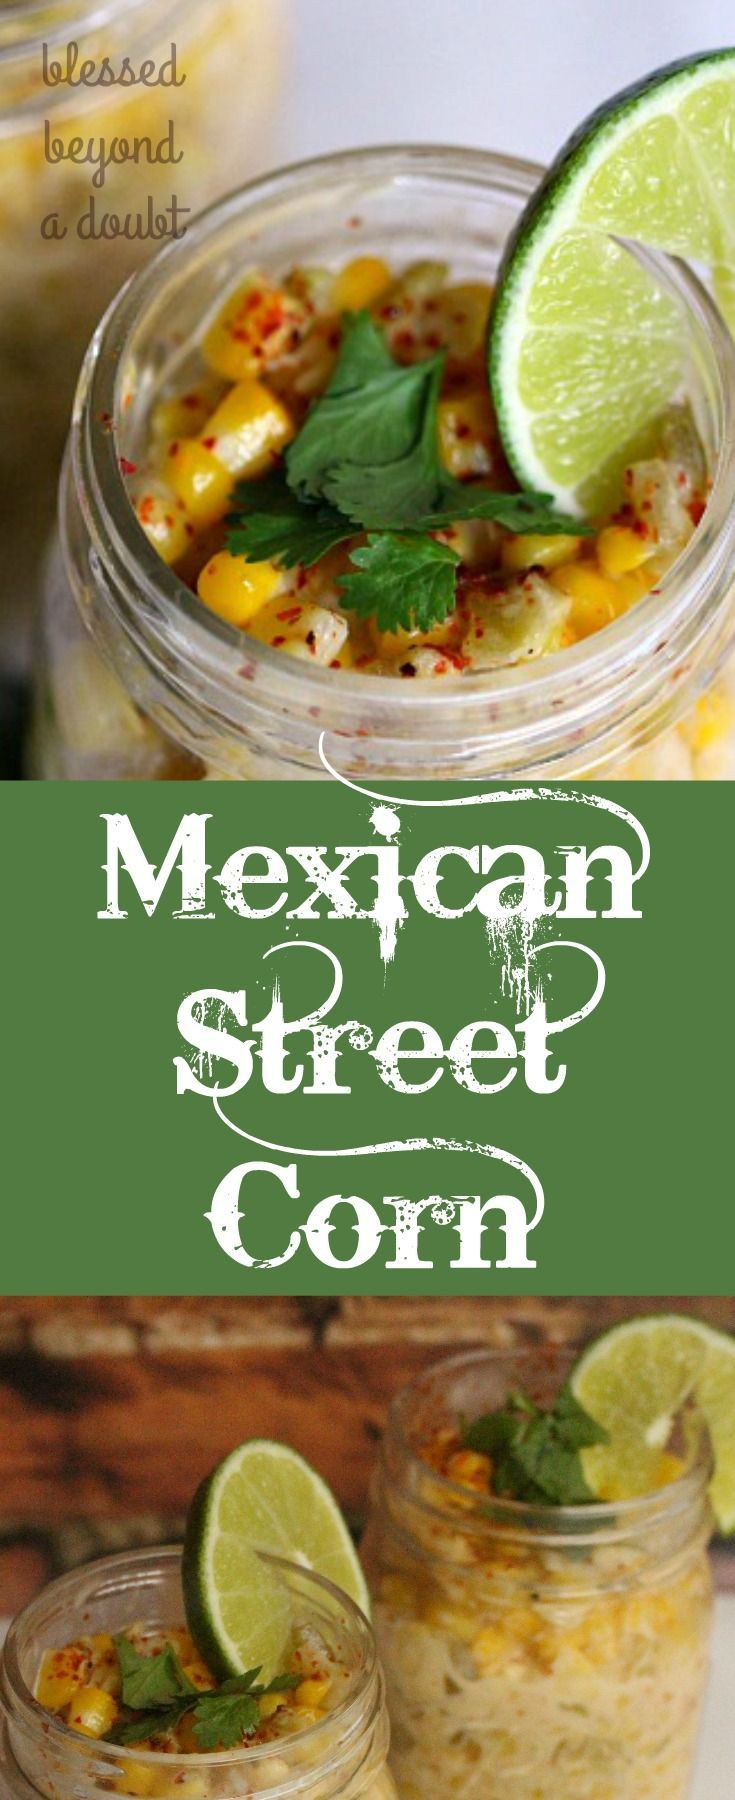 Here's an easy Mexican Street Corn recipe that's filled with flavor. It's easy to modify to meet your family's needs. Try it for Taco Tuesday.